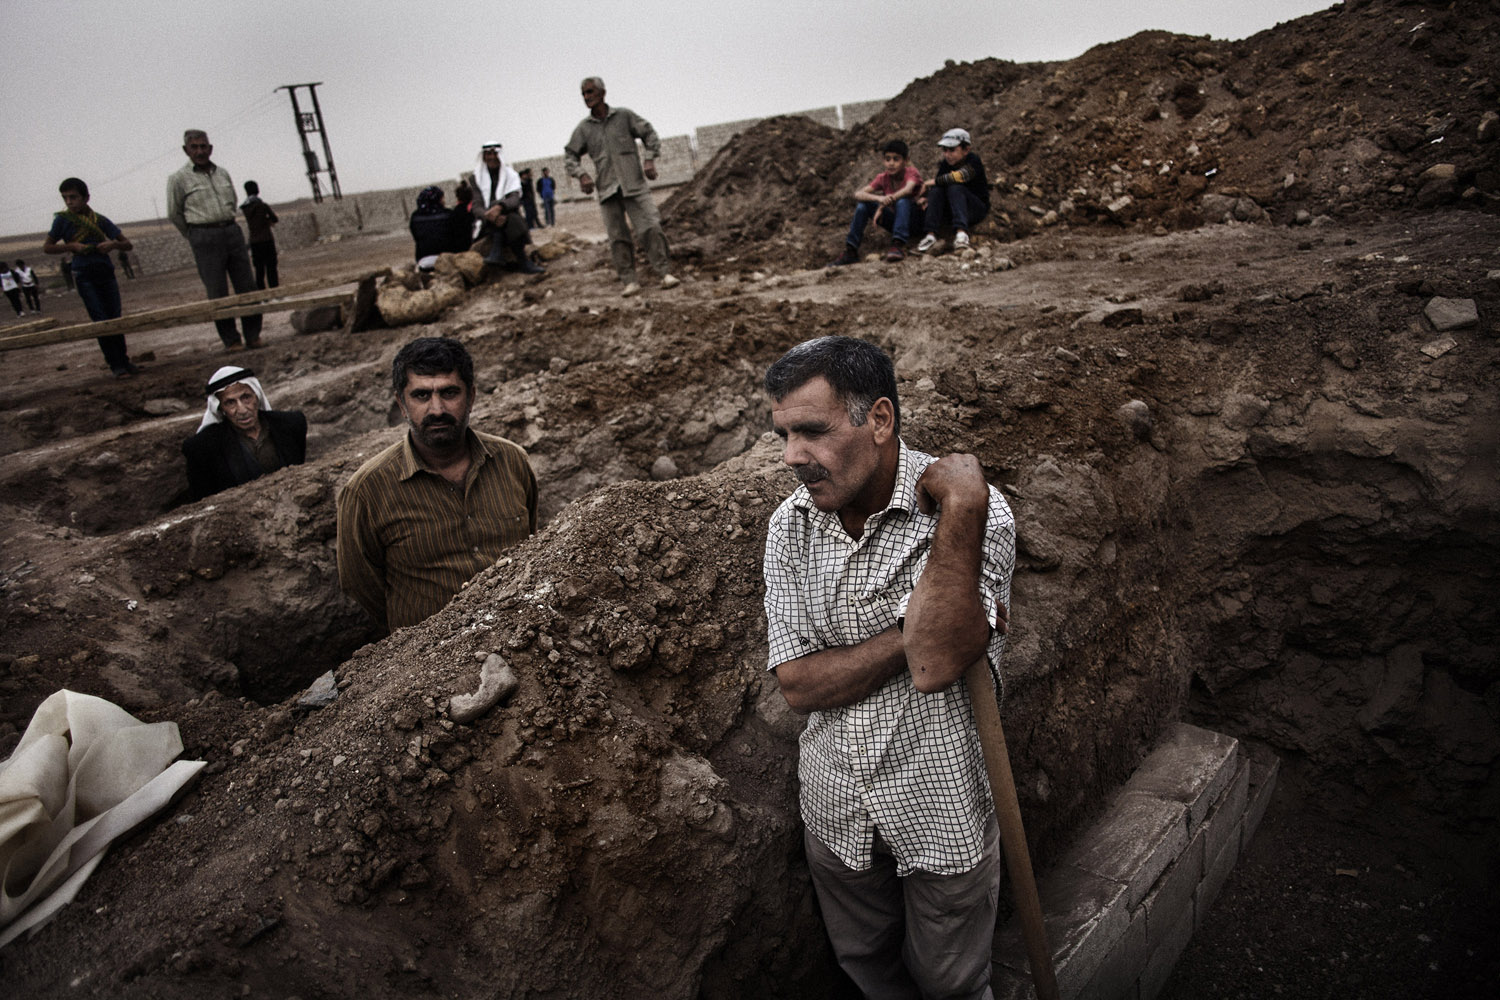 Kurdish gravediggers rest after digging the holes that will hold the coffins of soldiers killed during the fighting between YPG, the Nusra Front and ISIS.